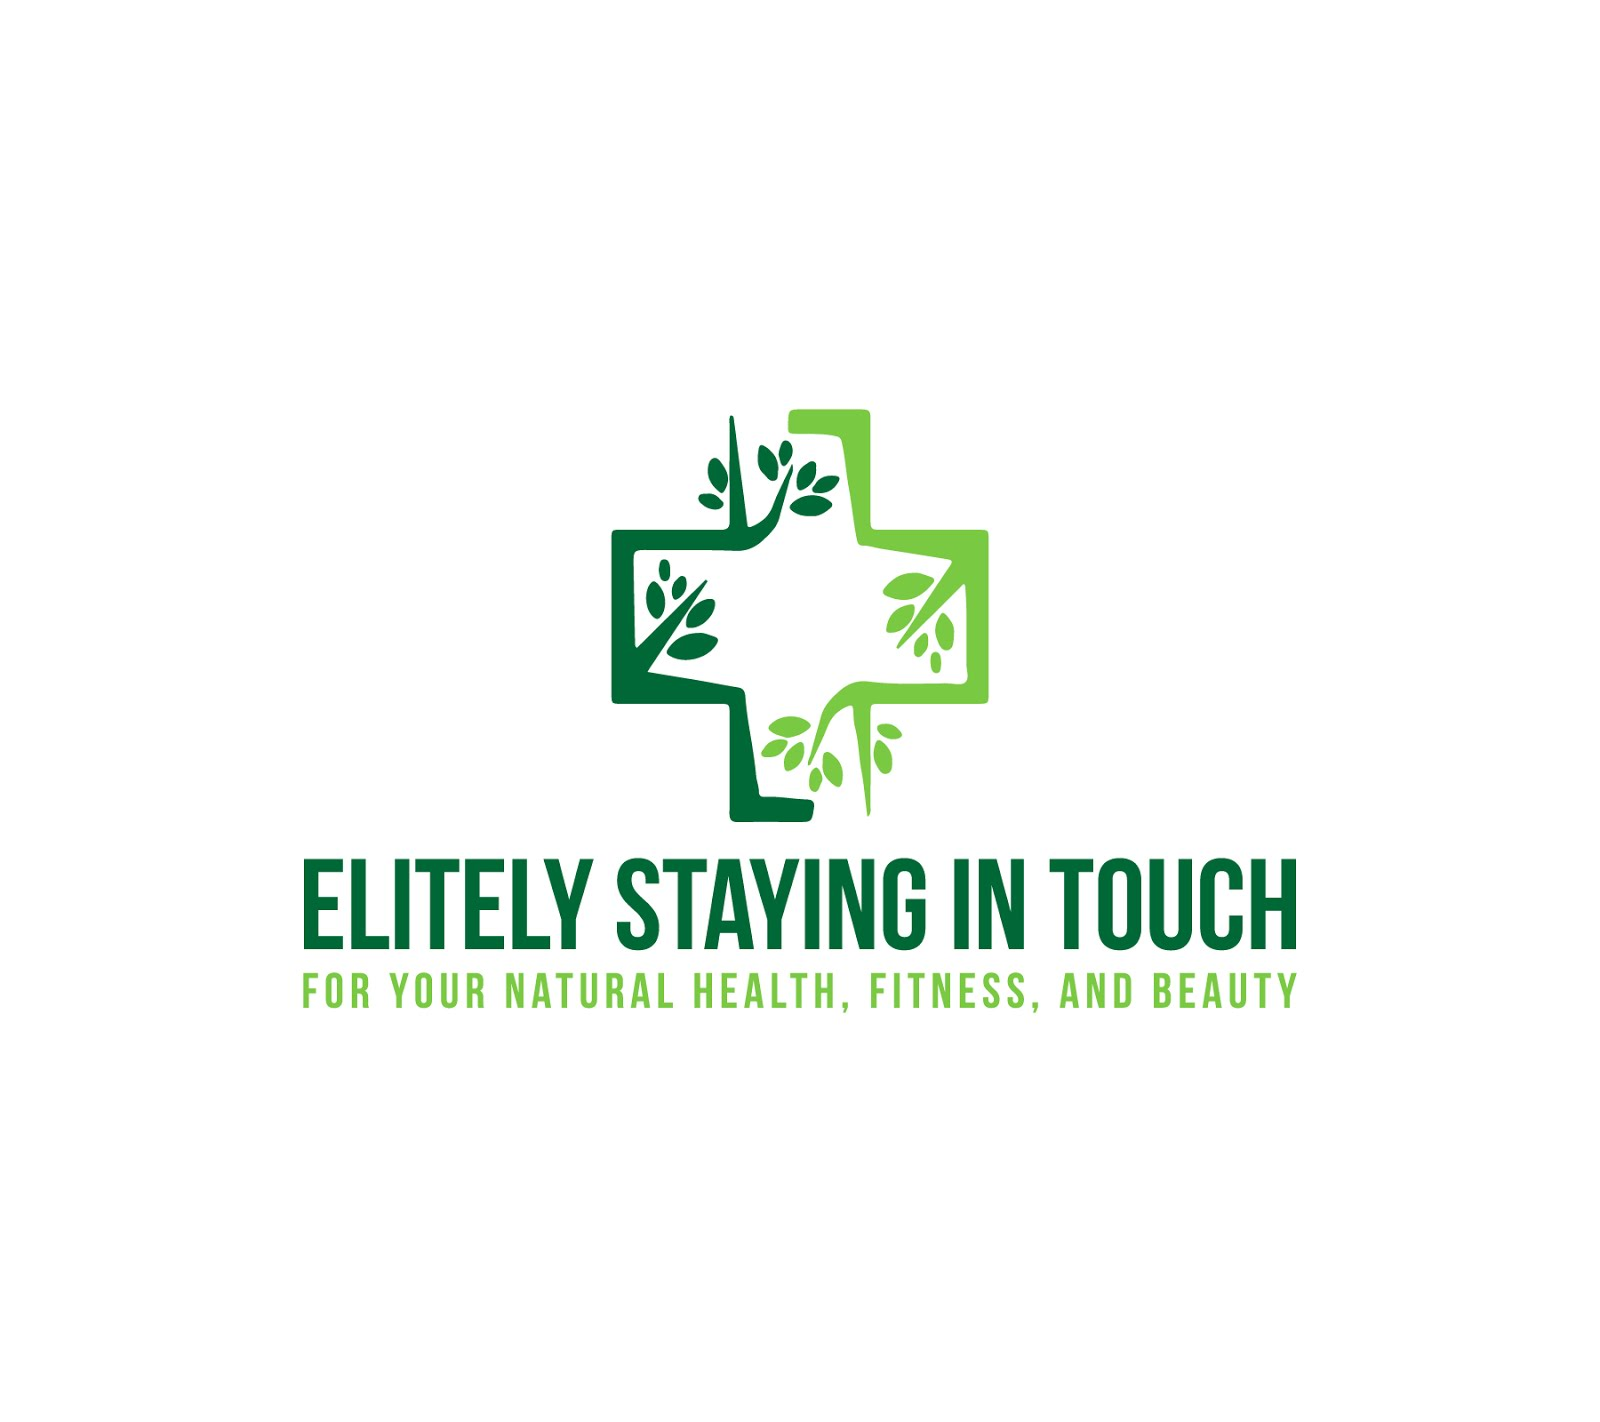 ELITELY STAYING IN TOUCH